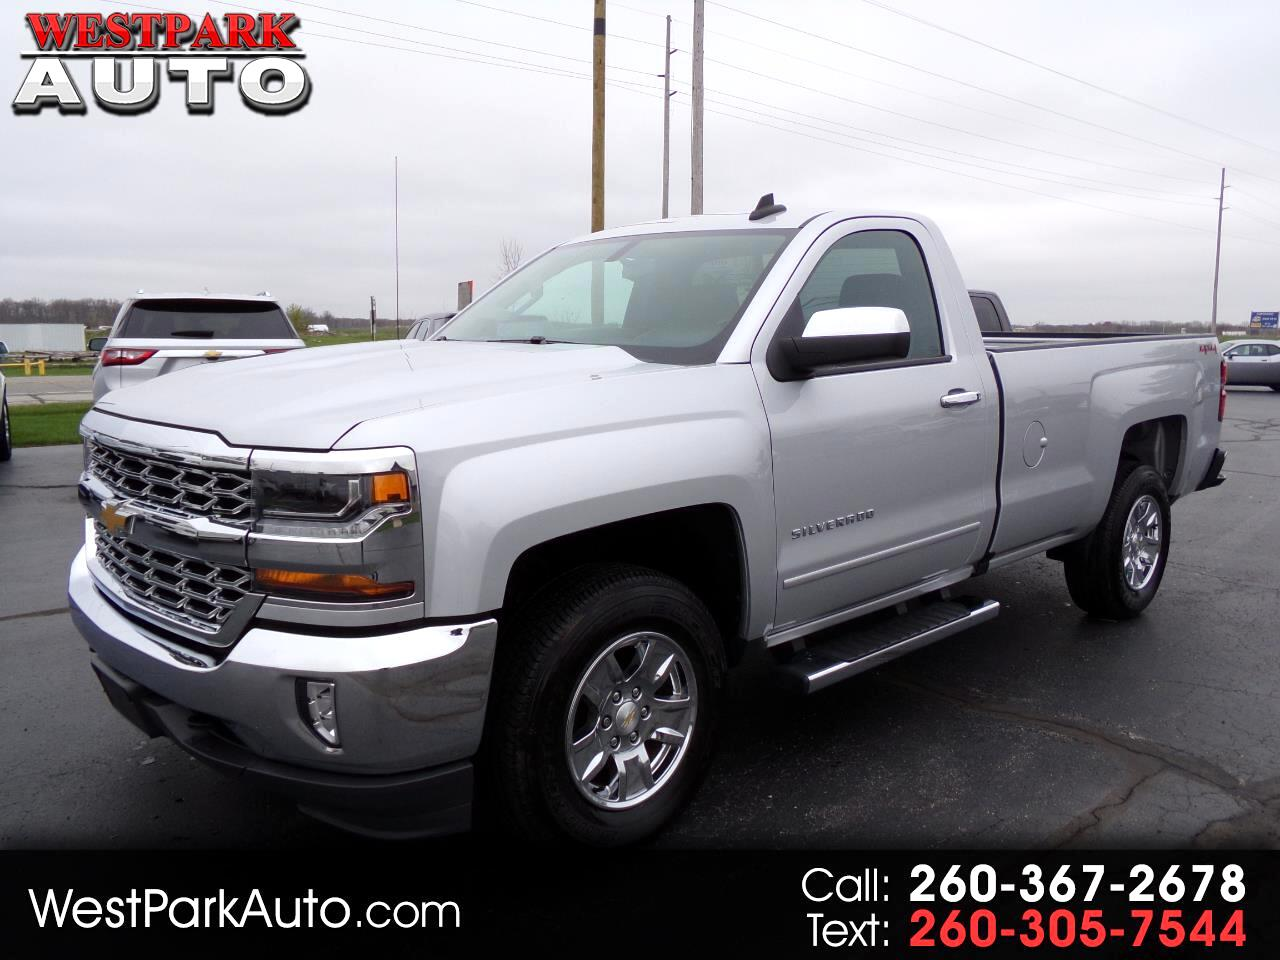 2016 Chevrolet Silverado 1500 1LT Regular Cab Long Box 4WD